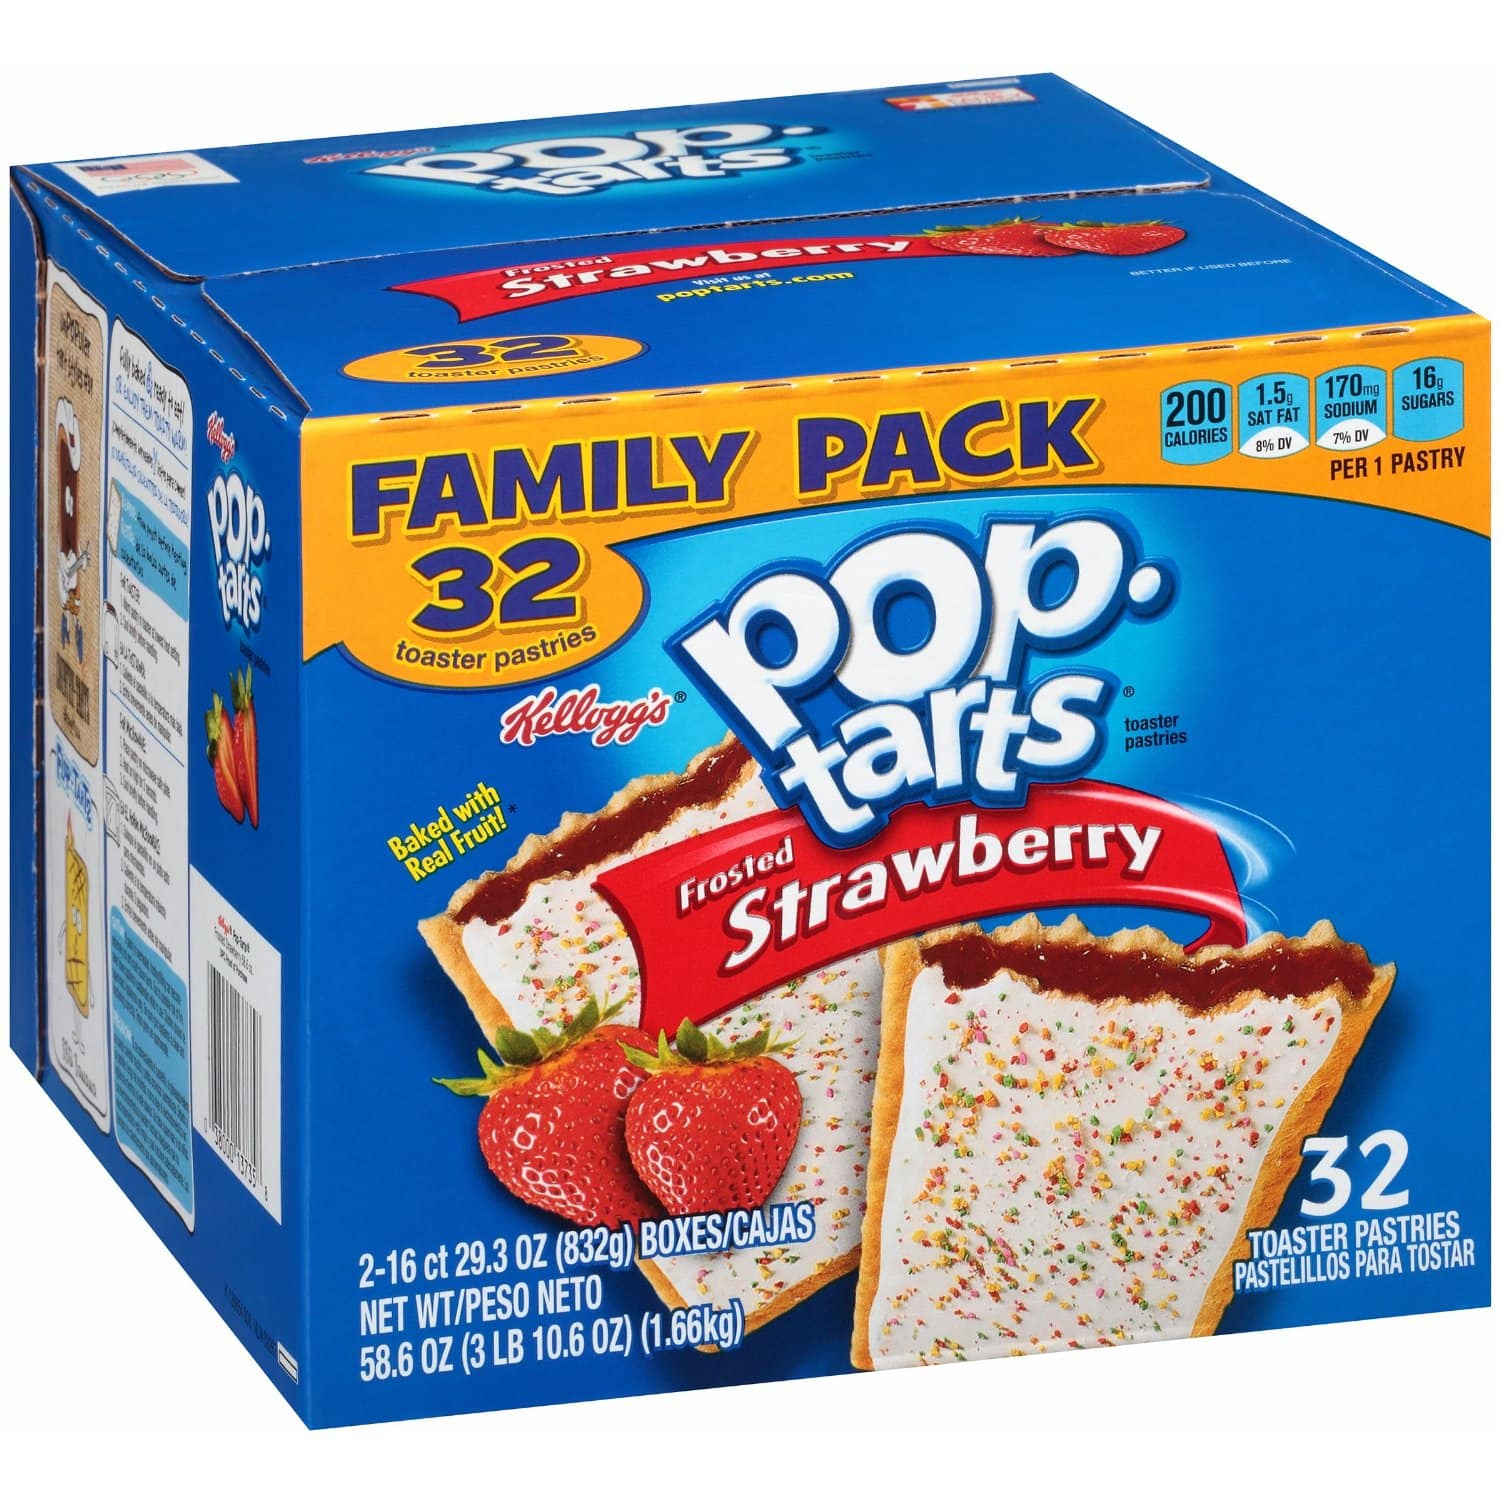 Pop-Tarts, Frosted Strawberry, 32 Count - $5.73 w/S&S, (As Low As - $5.13)